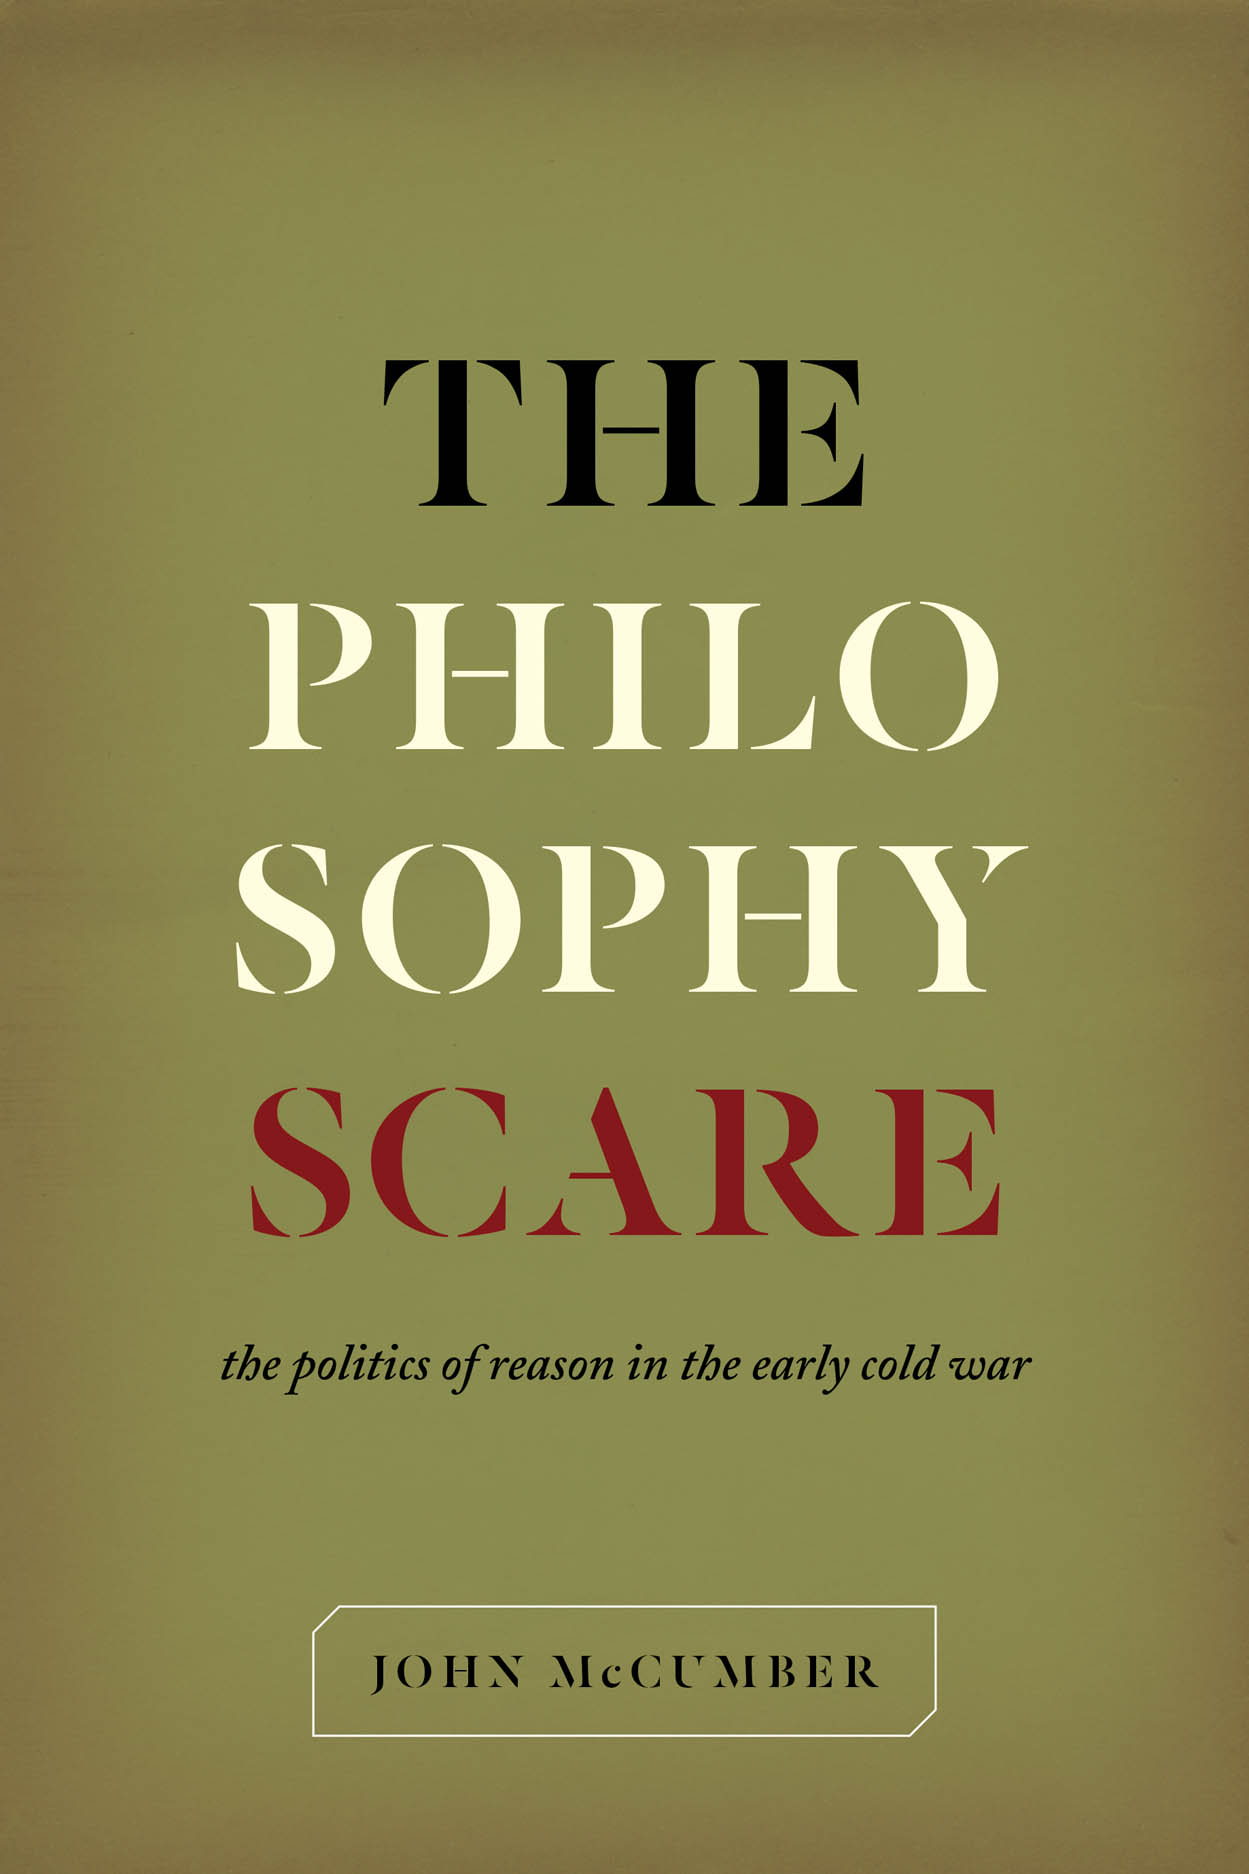 The Philosophy Scare: The Politics of Reason in the Early Cold War